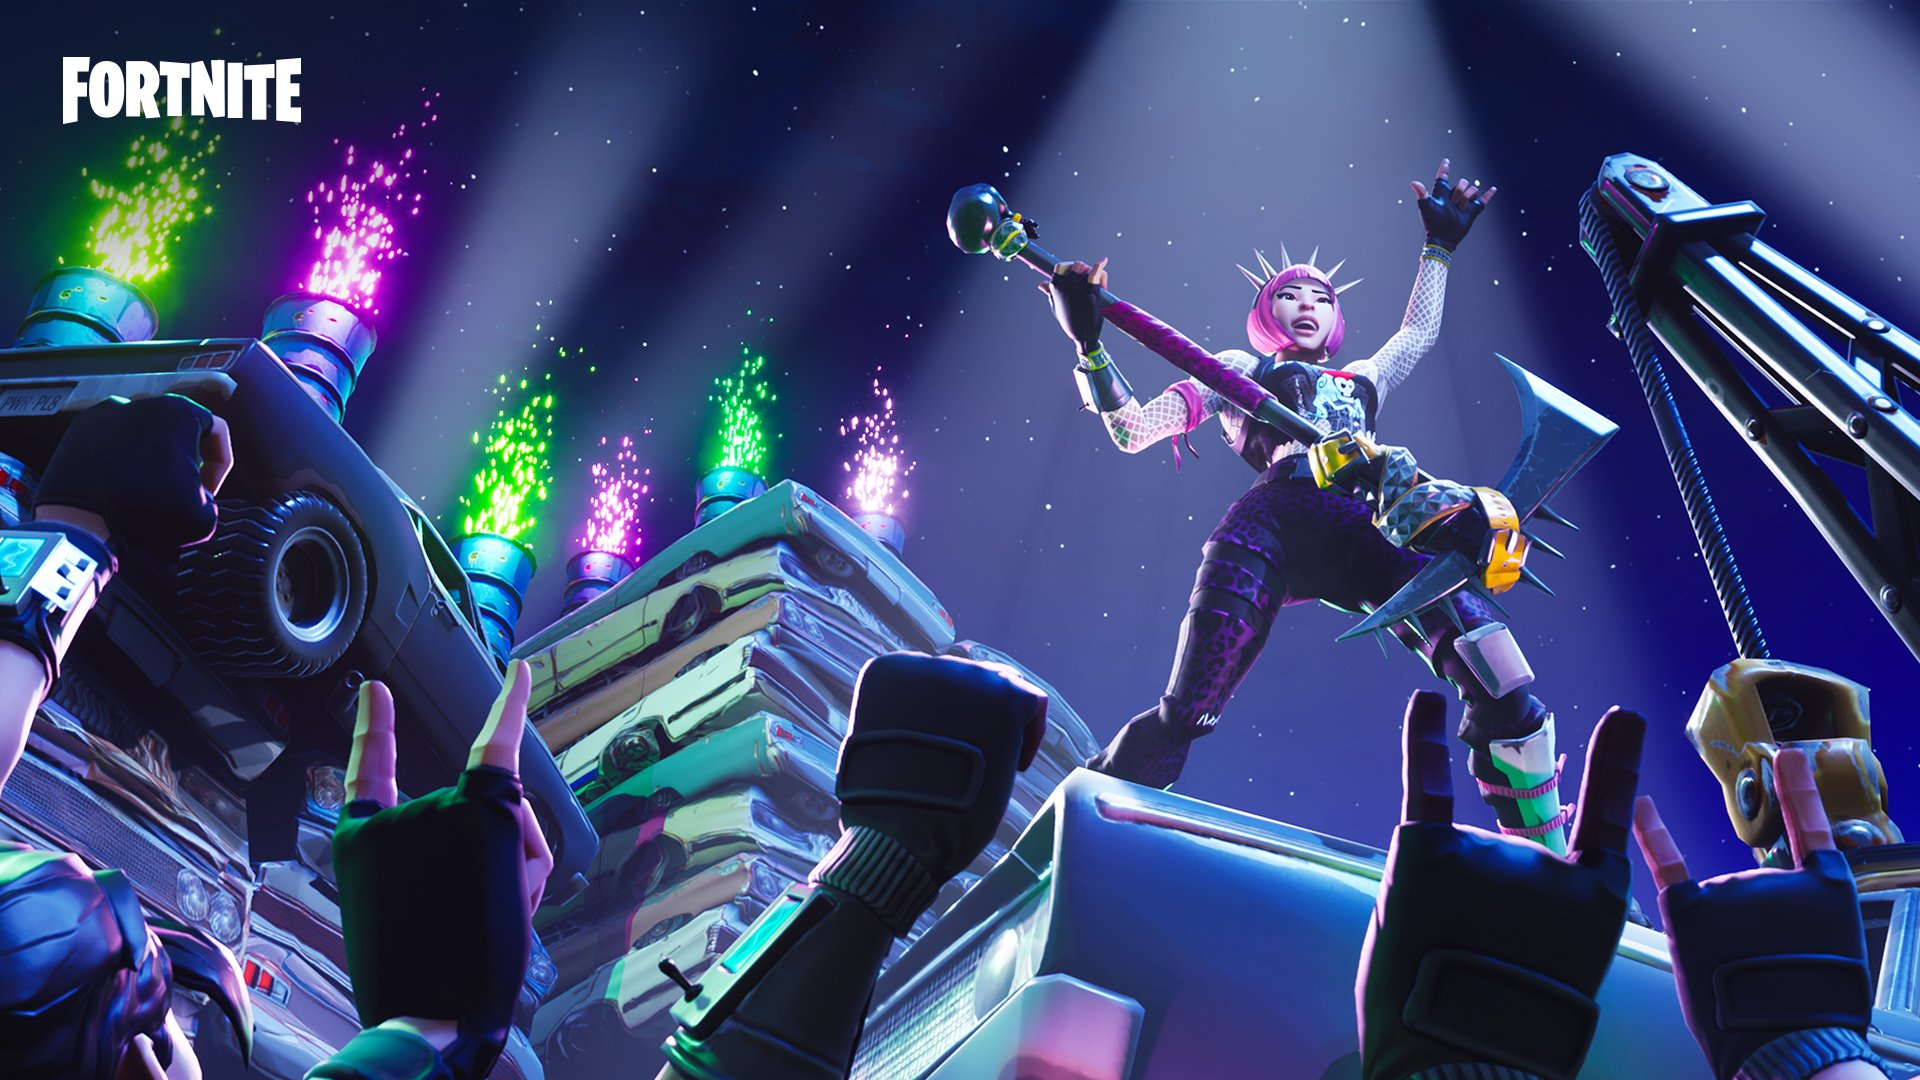 Fortnite battle royale skins all free and premium - Fortnite save the world wallpaper ...